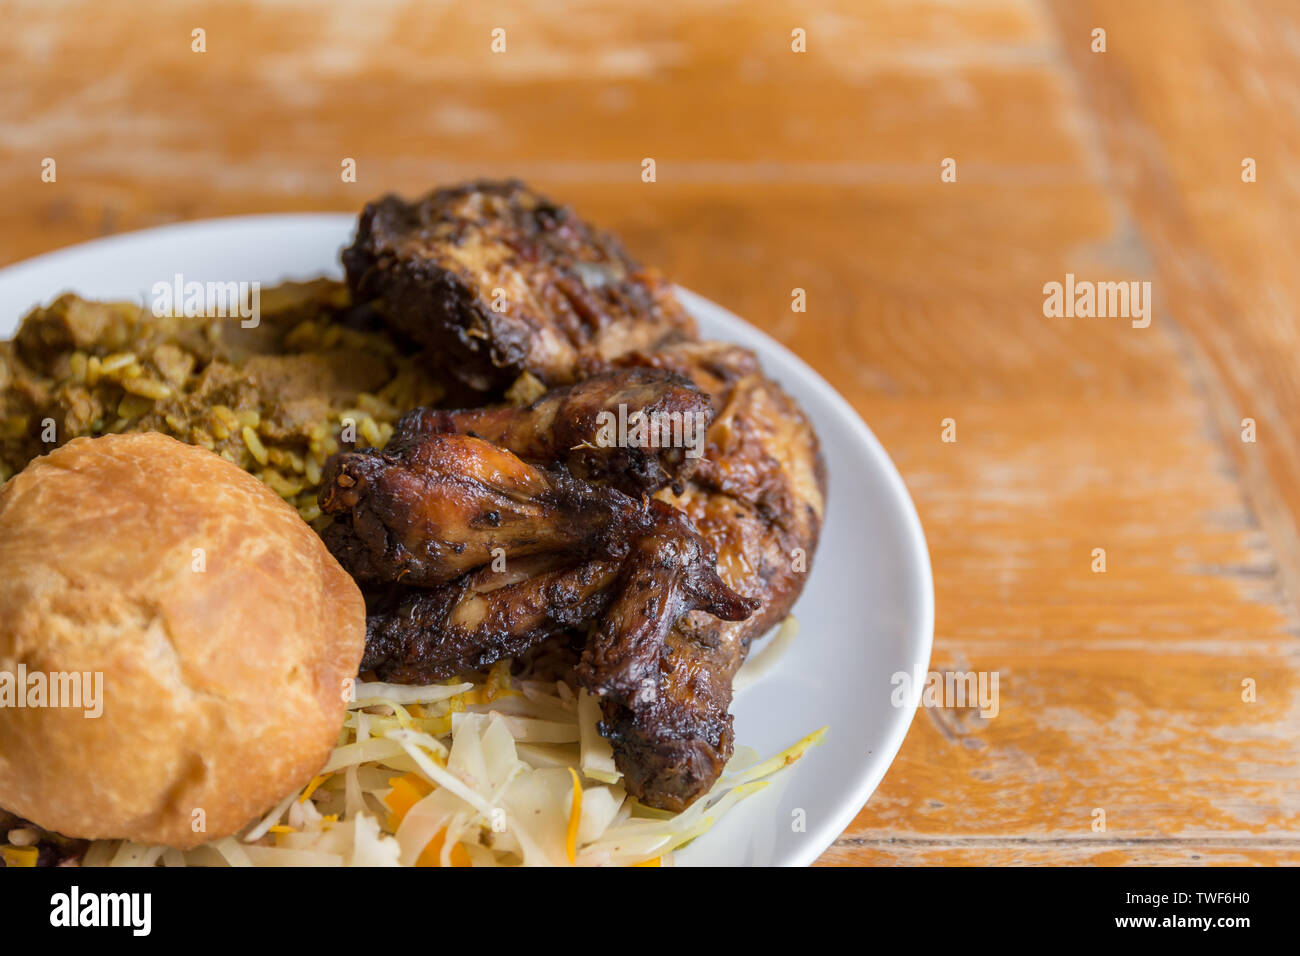 Jamaican food.  Traditional Jamaican curried goat, jerk chicken and fried dumpling with rice and peas. - Stock Image